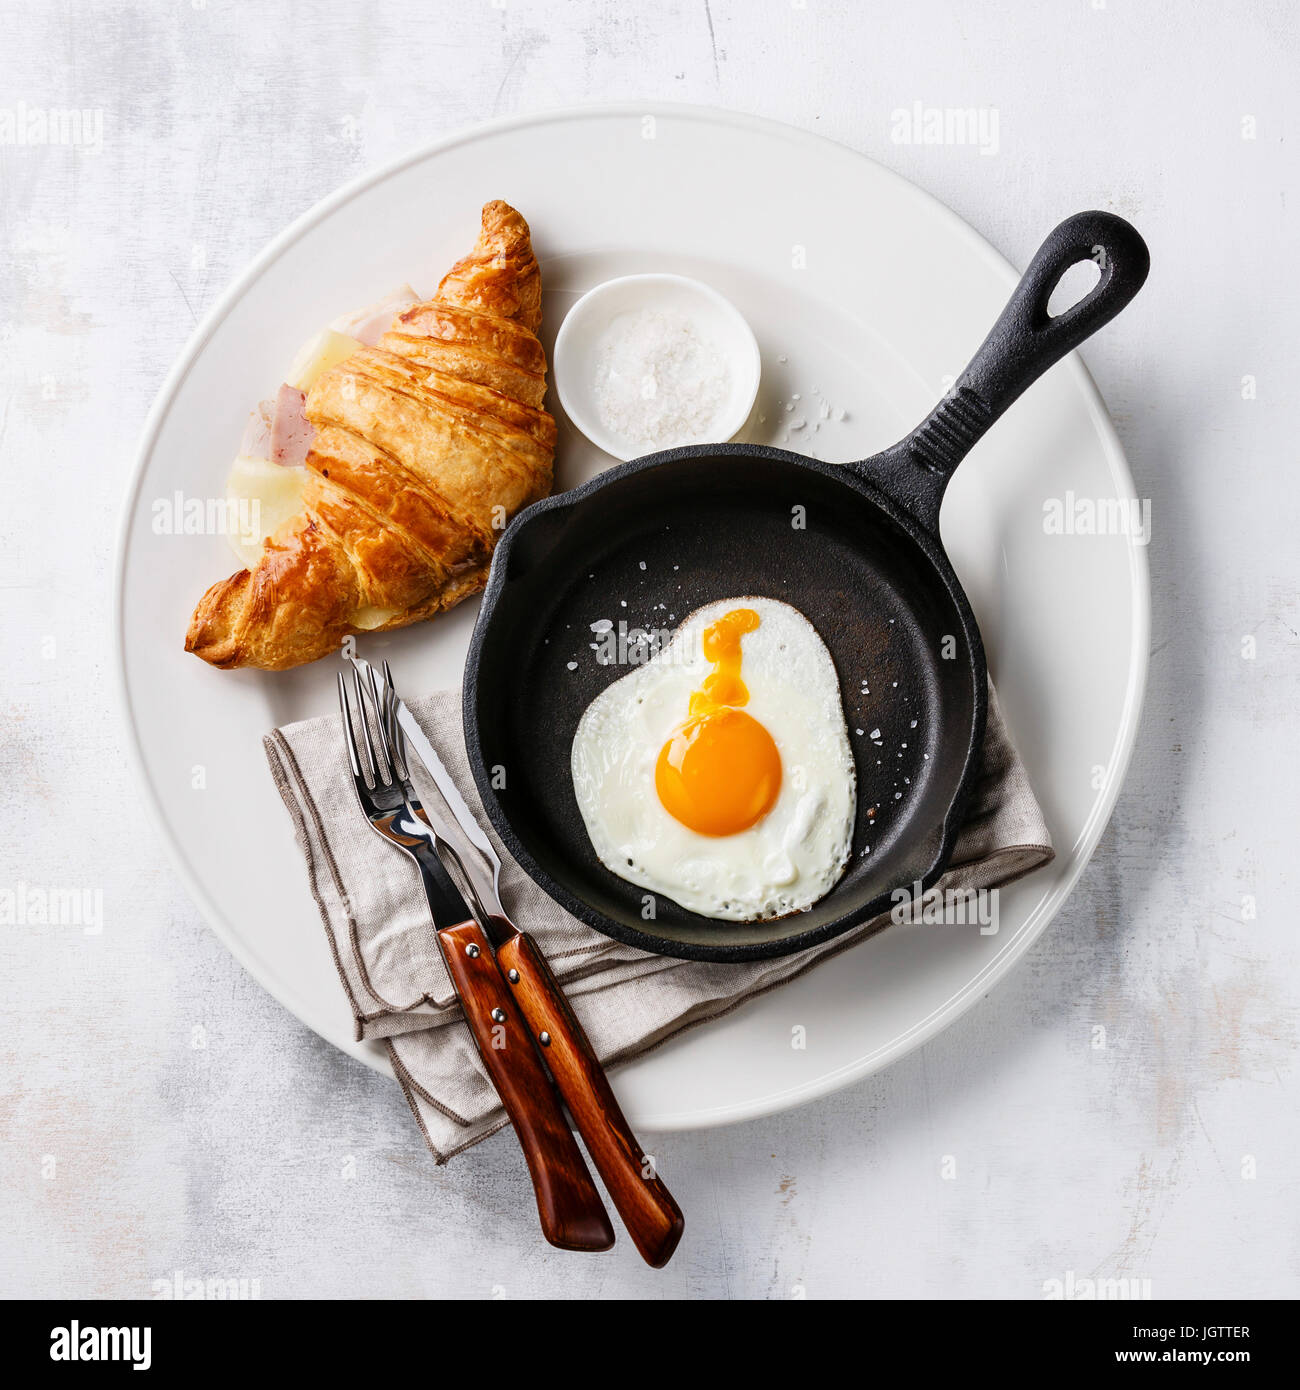 Breakfast with Fried egg on iron pan and croissant sandwich with cheese and ham on white plate on white background - Stock Image